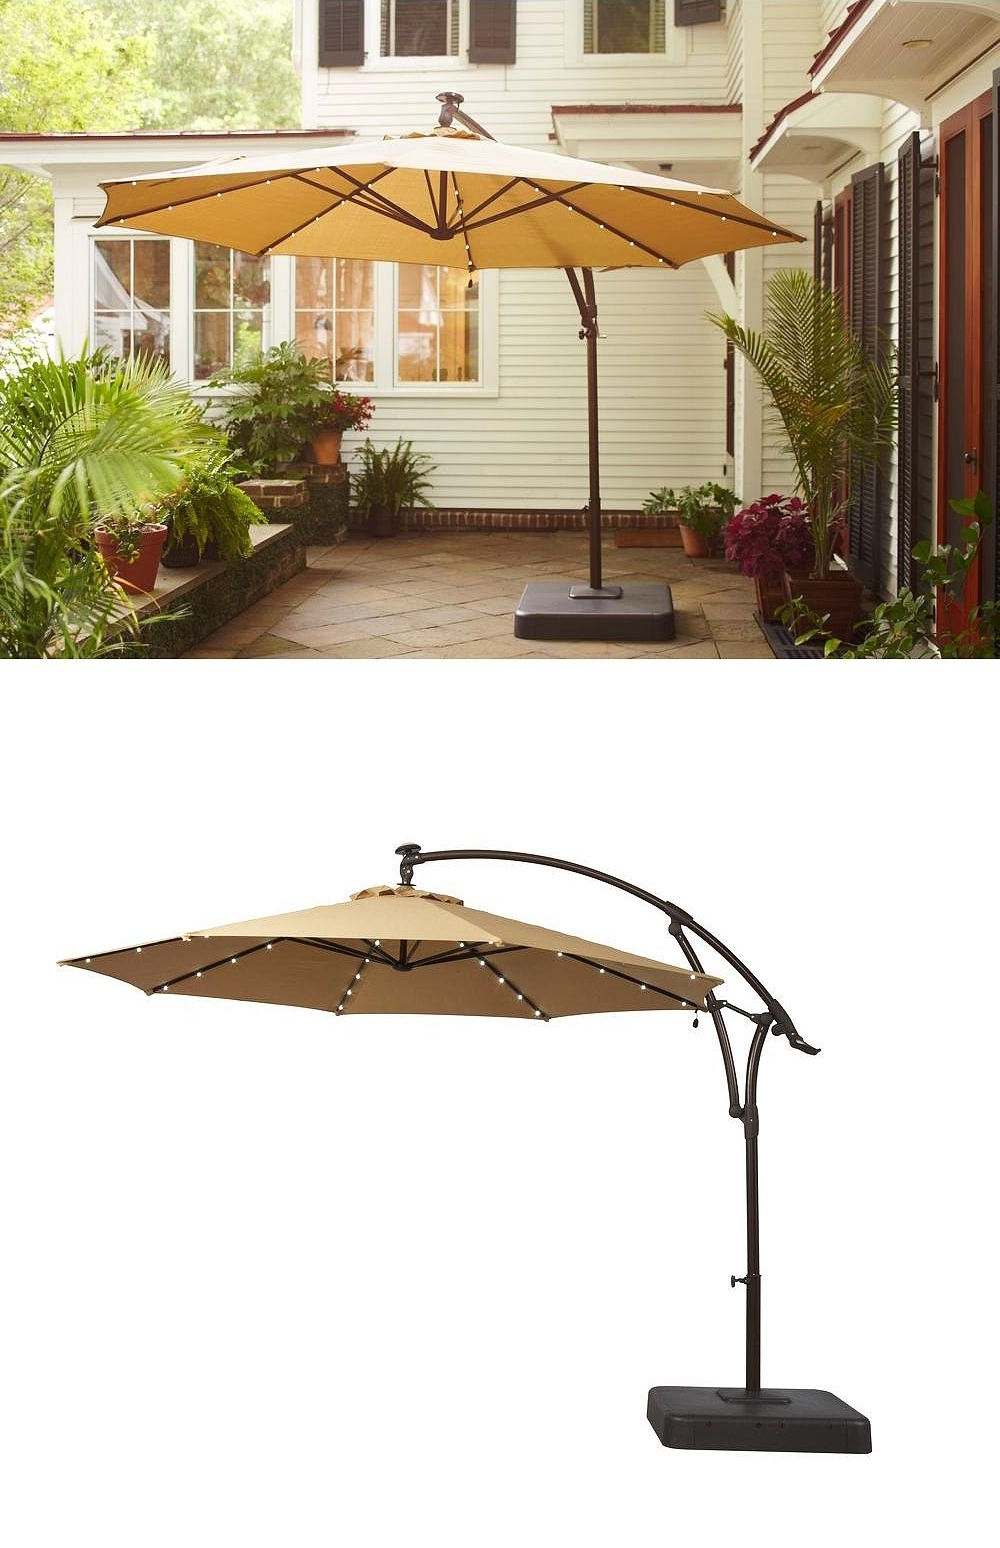 Most Current There's Something Special About This Patio Umbrella: It Has Small With Regard To Patio Umbrellas With Solar Led Lights (View 15 of 20)